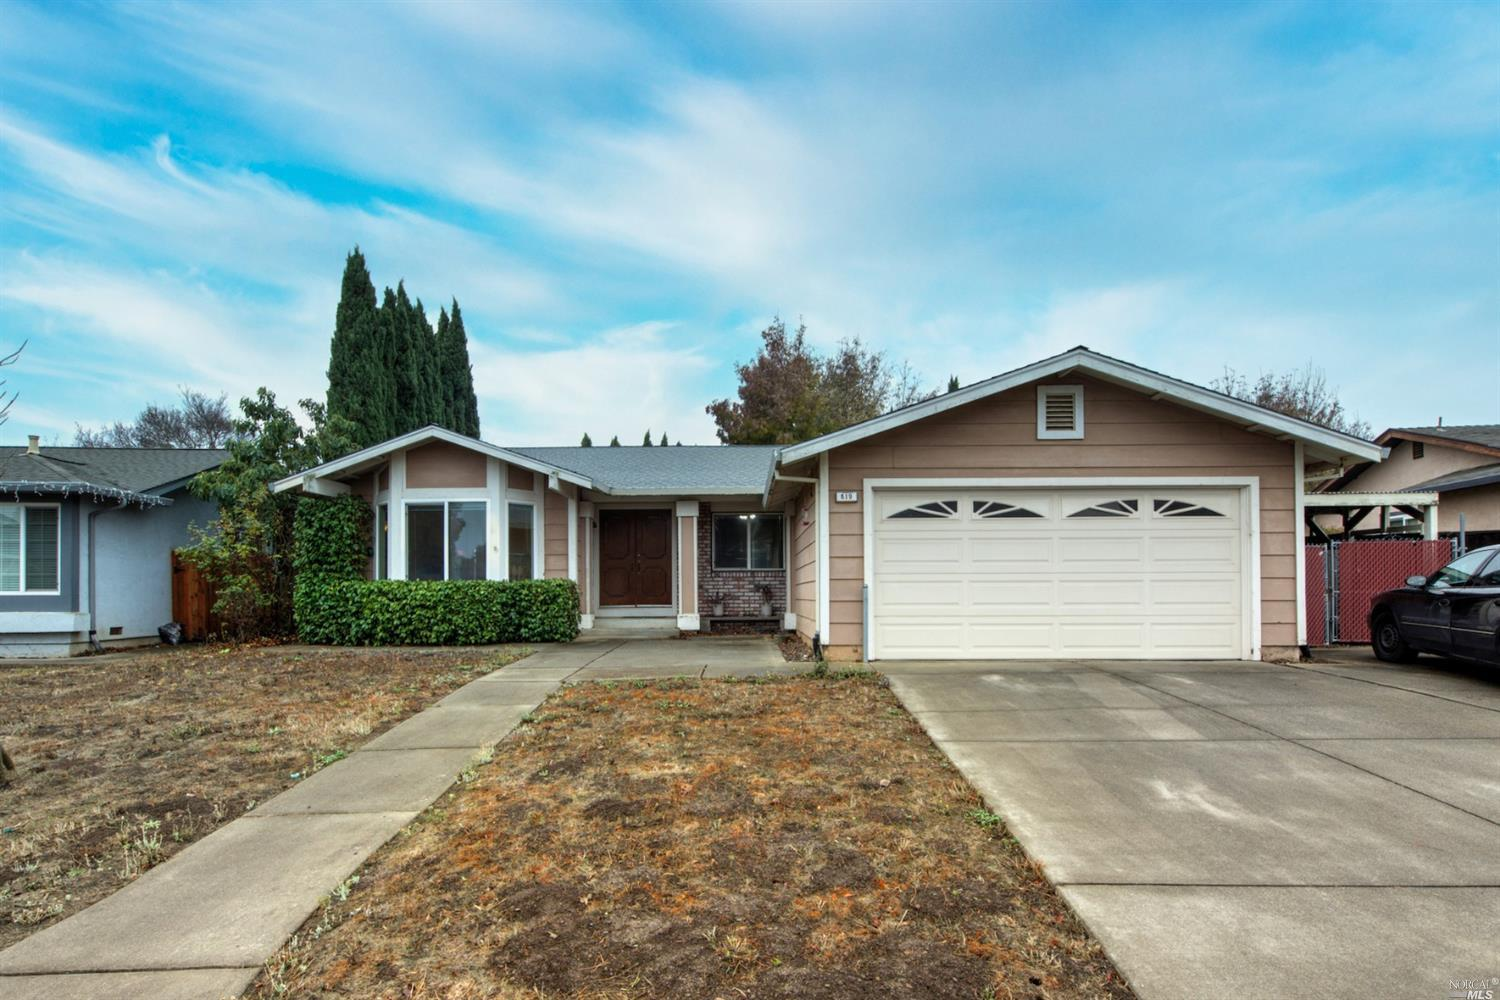 Cordelia move-in ready single story with RV/boat parking. Spacious open floor plan offers laminate f